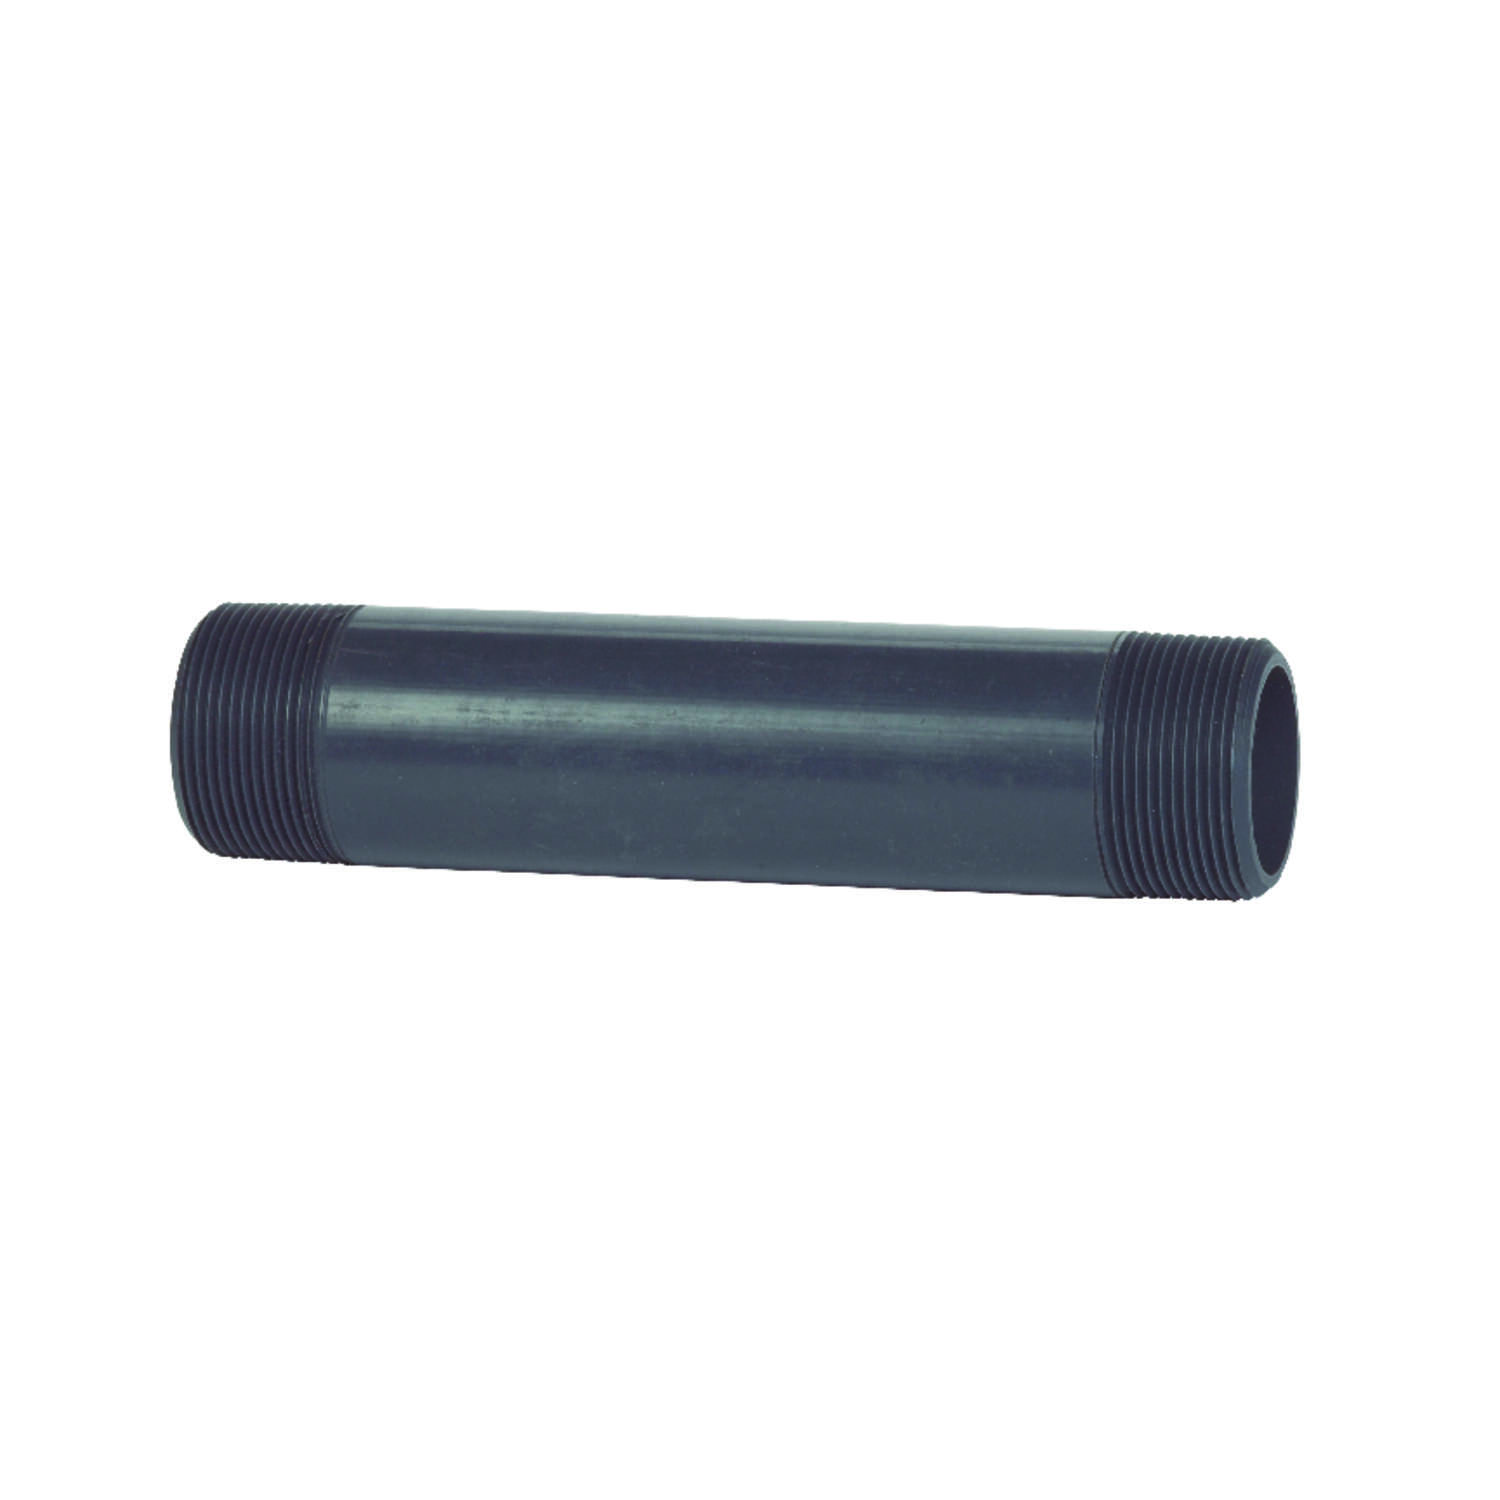 BK Products Schedule 80 1/2 in. MPT PVC 3-1/2 in. Nipple